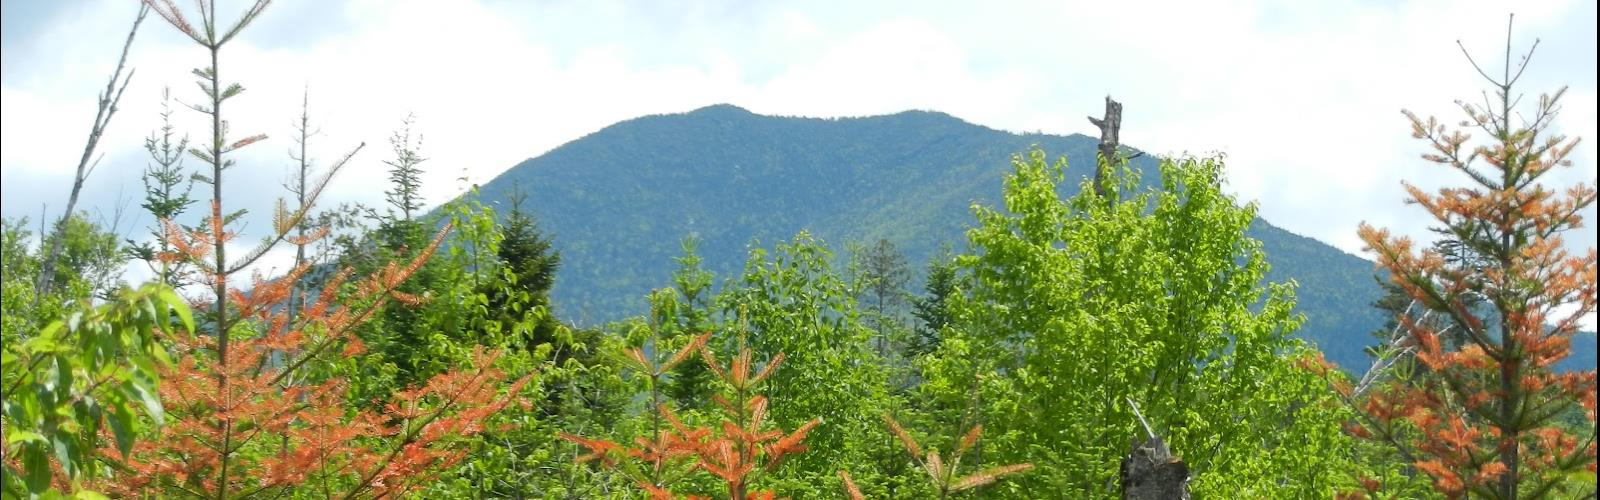 Allen Mountain, New York - Randonnée Pedestre  tree sky outdoor mountain conifer plant nature bushes forest surrounded lush